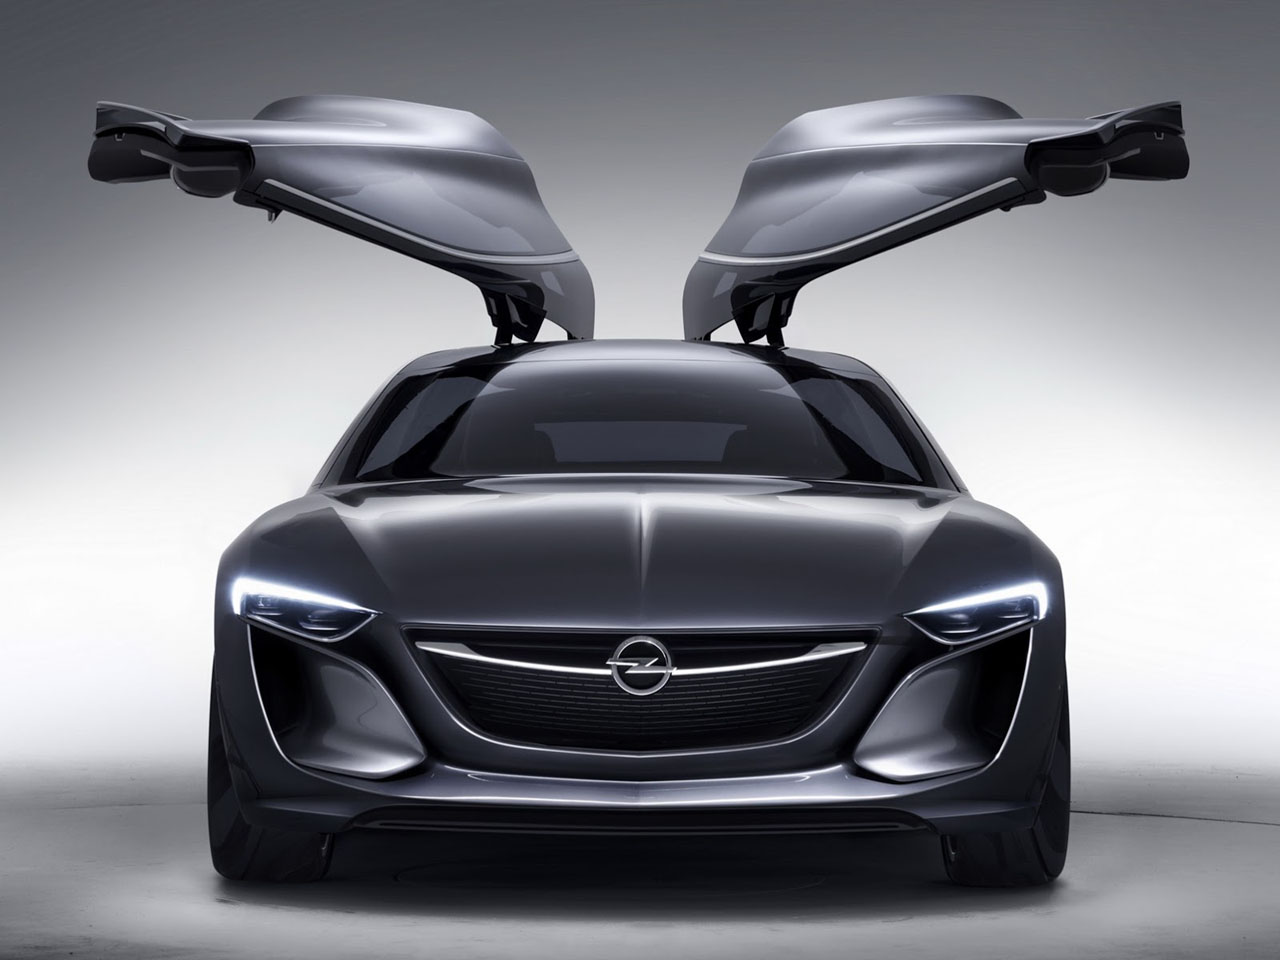 Opel-Monza-Coupe-concept-6